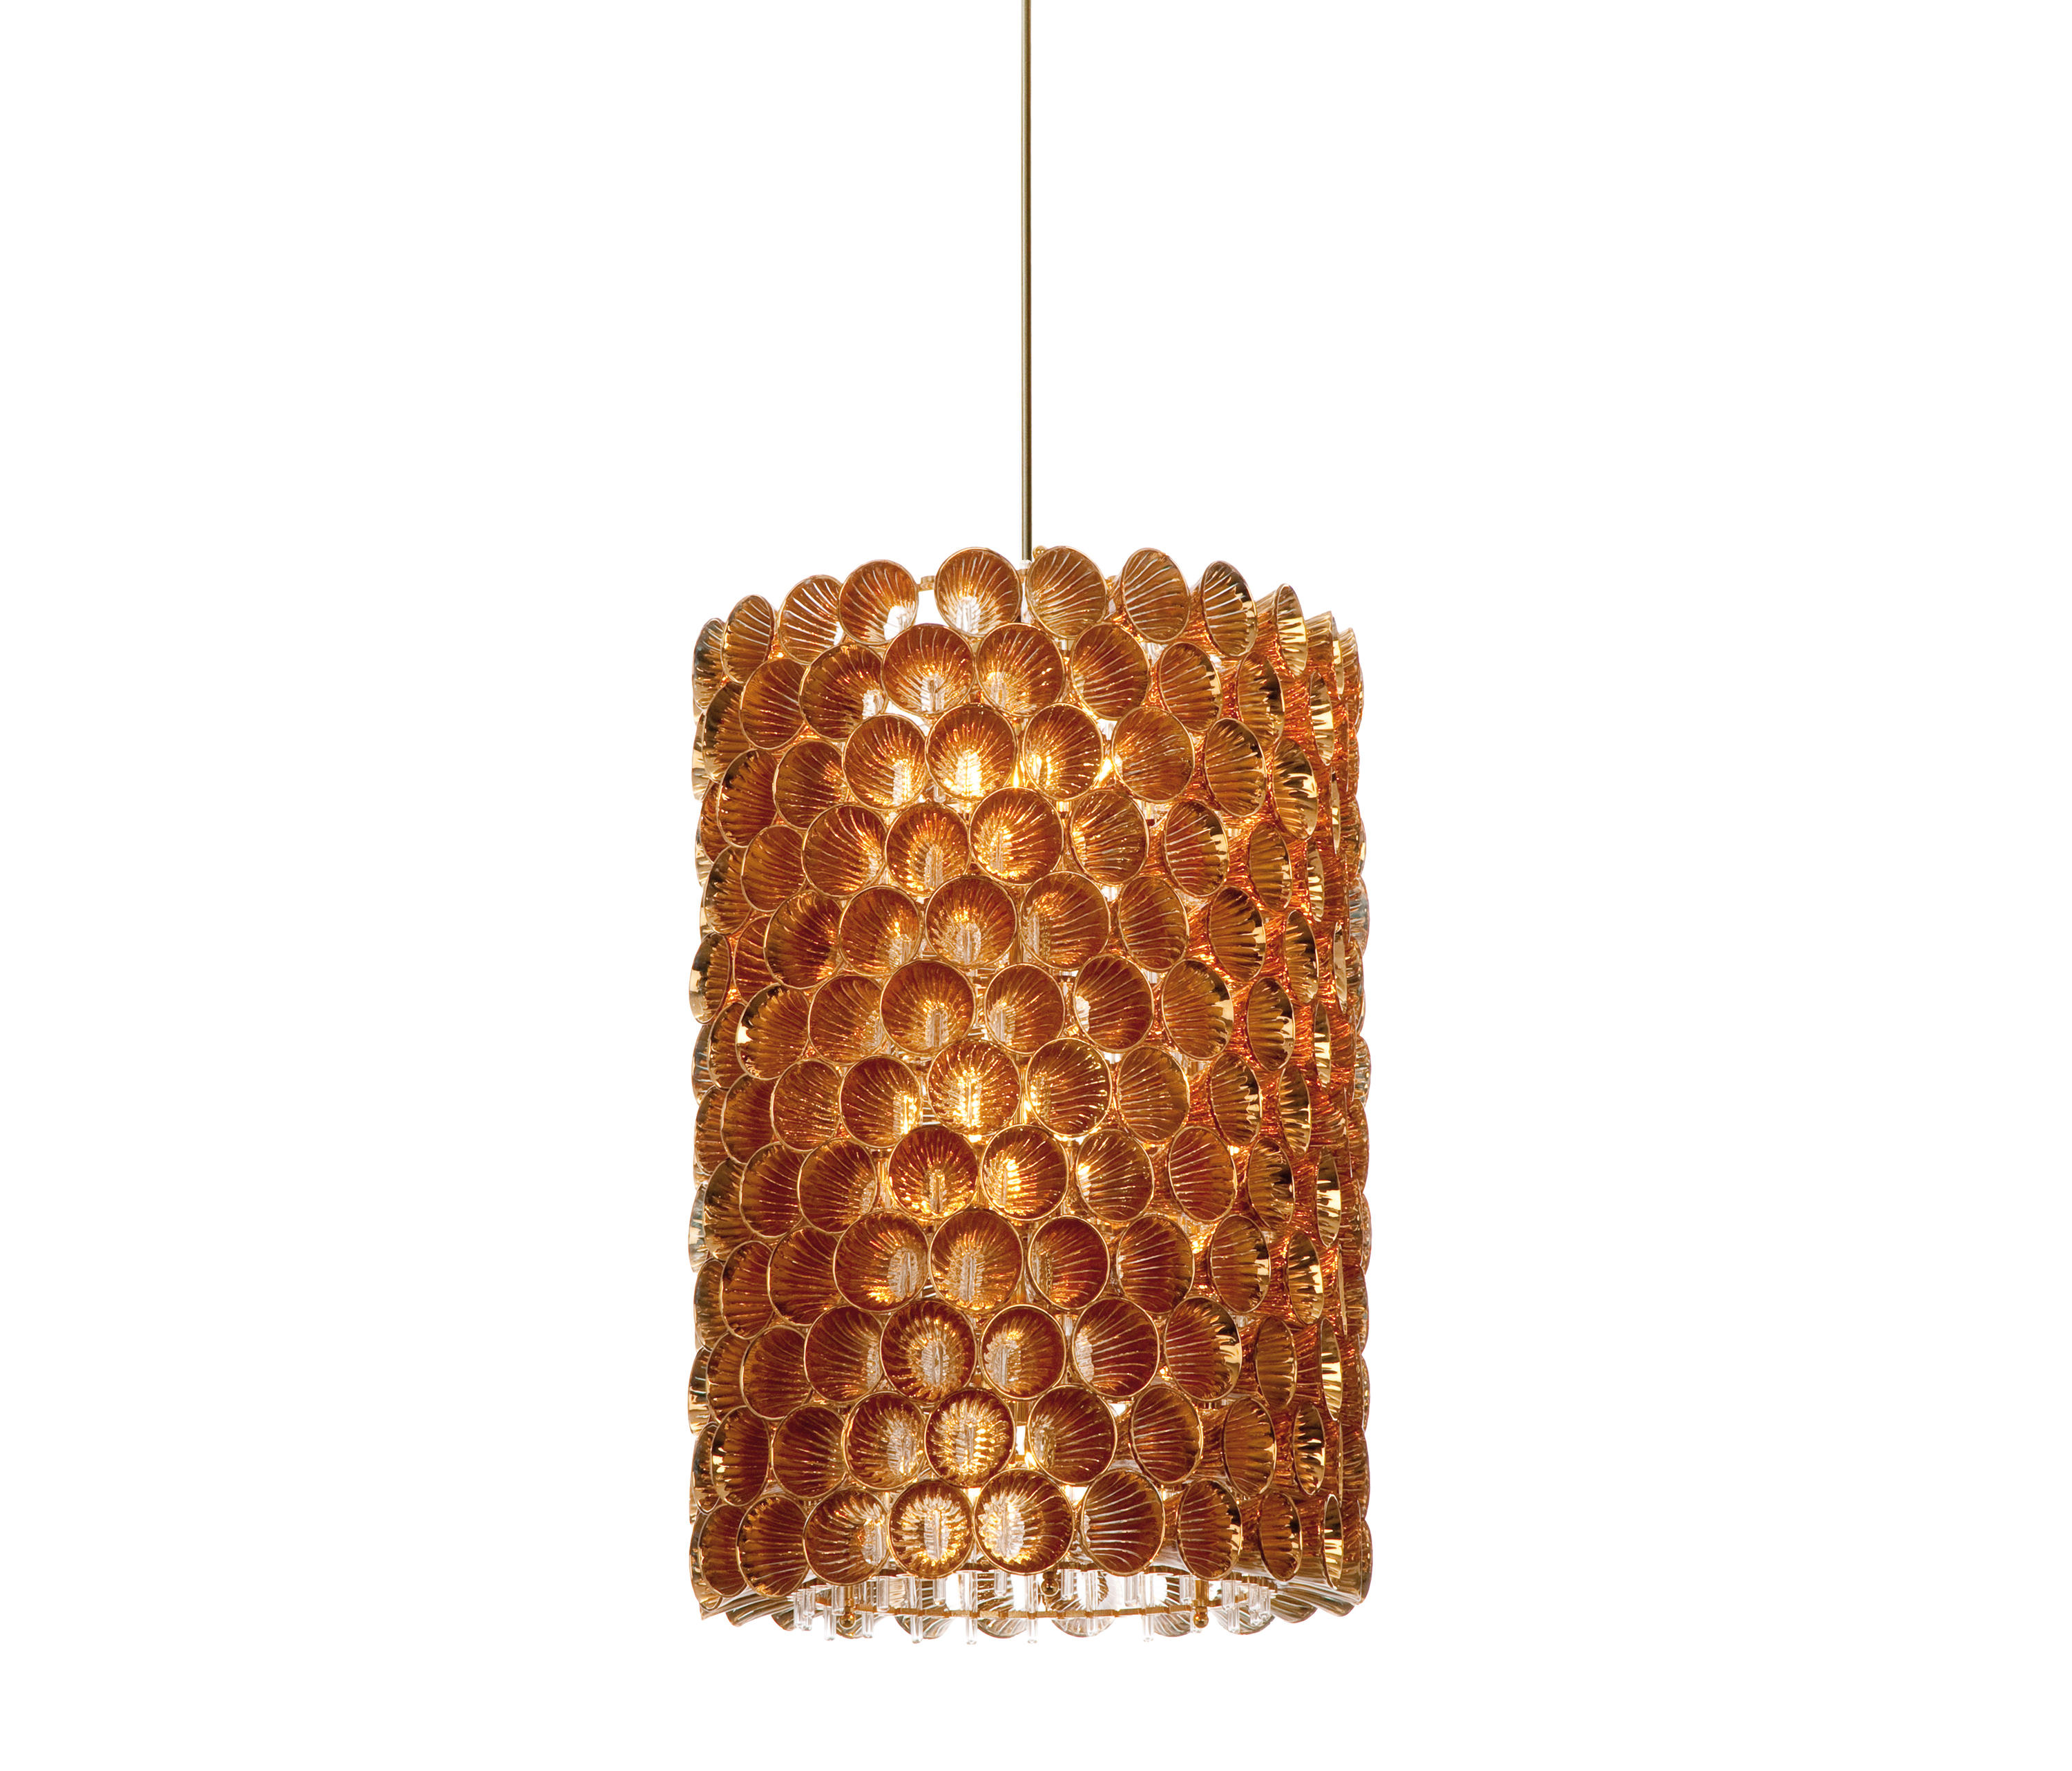 Corail by VERONESE   General lighting ...  sc 1 st  Architonic & CORAIL - General lighting from VERONESE   Architonic azcodes.com